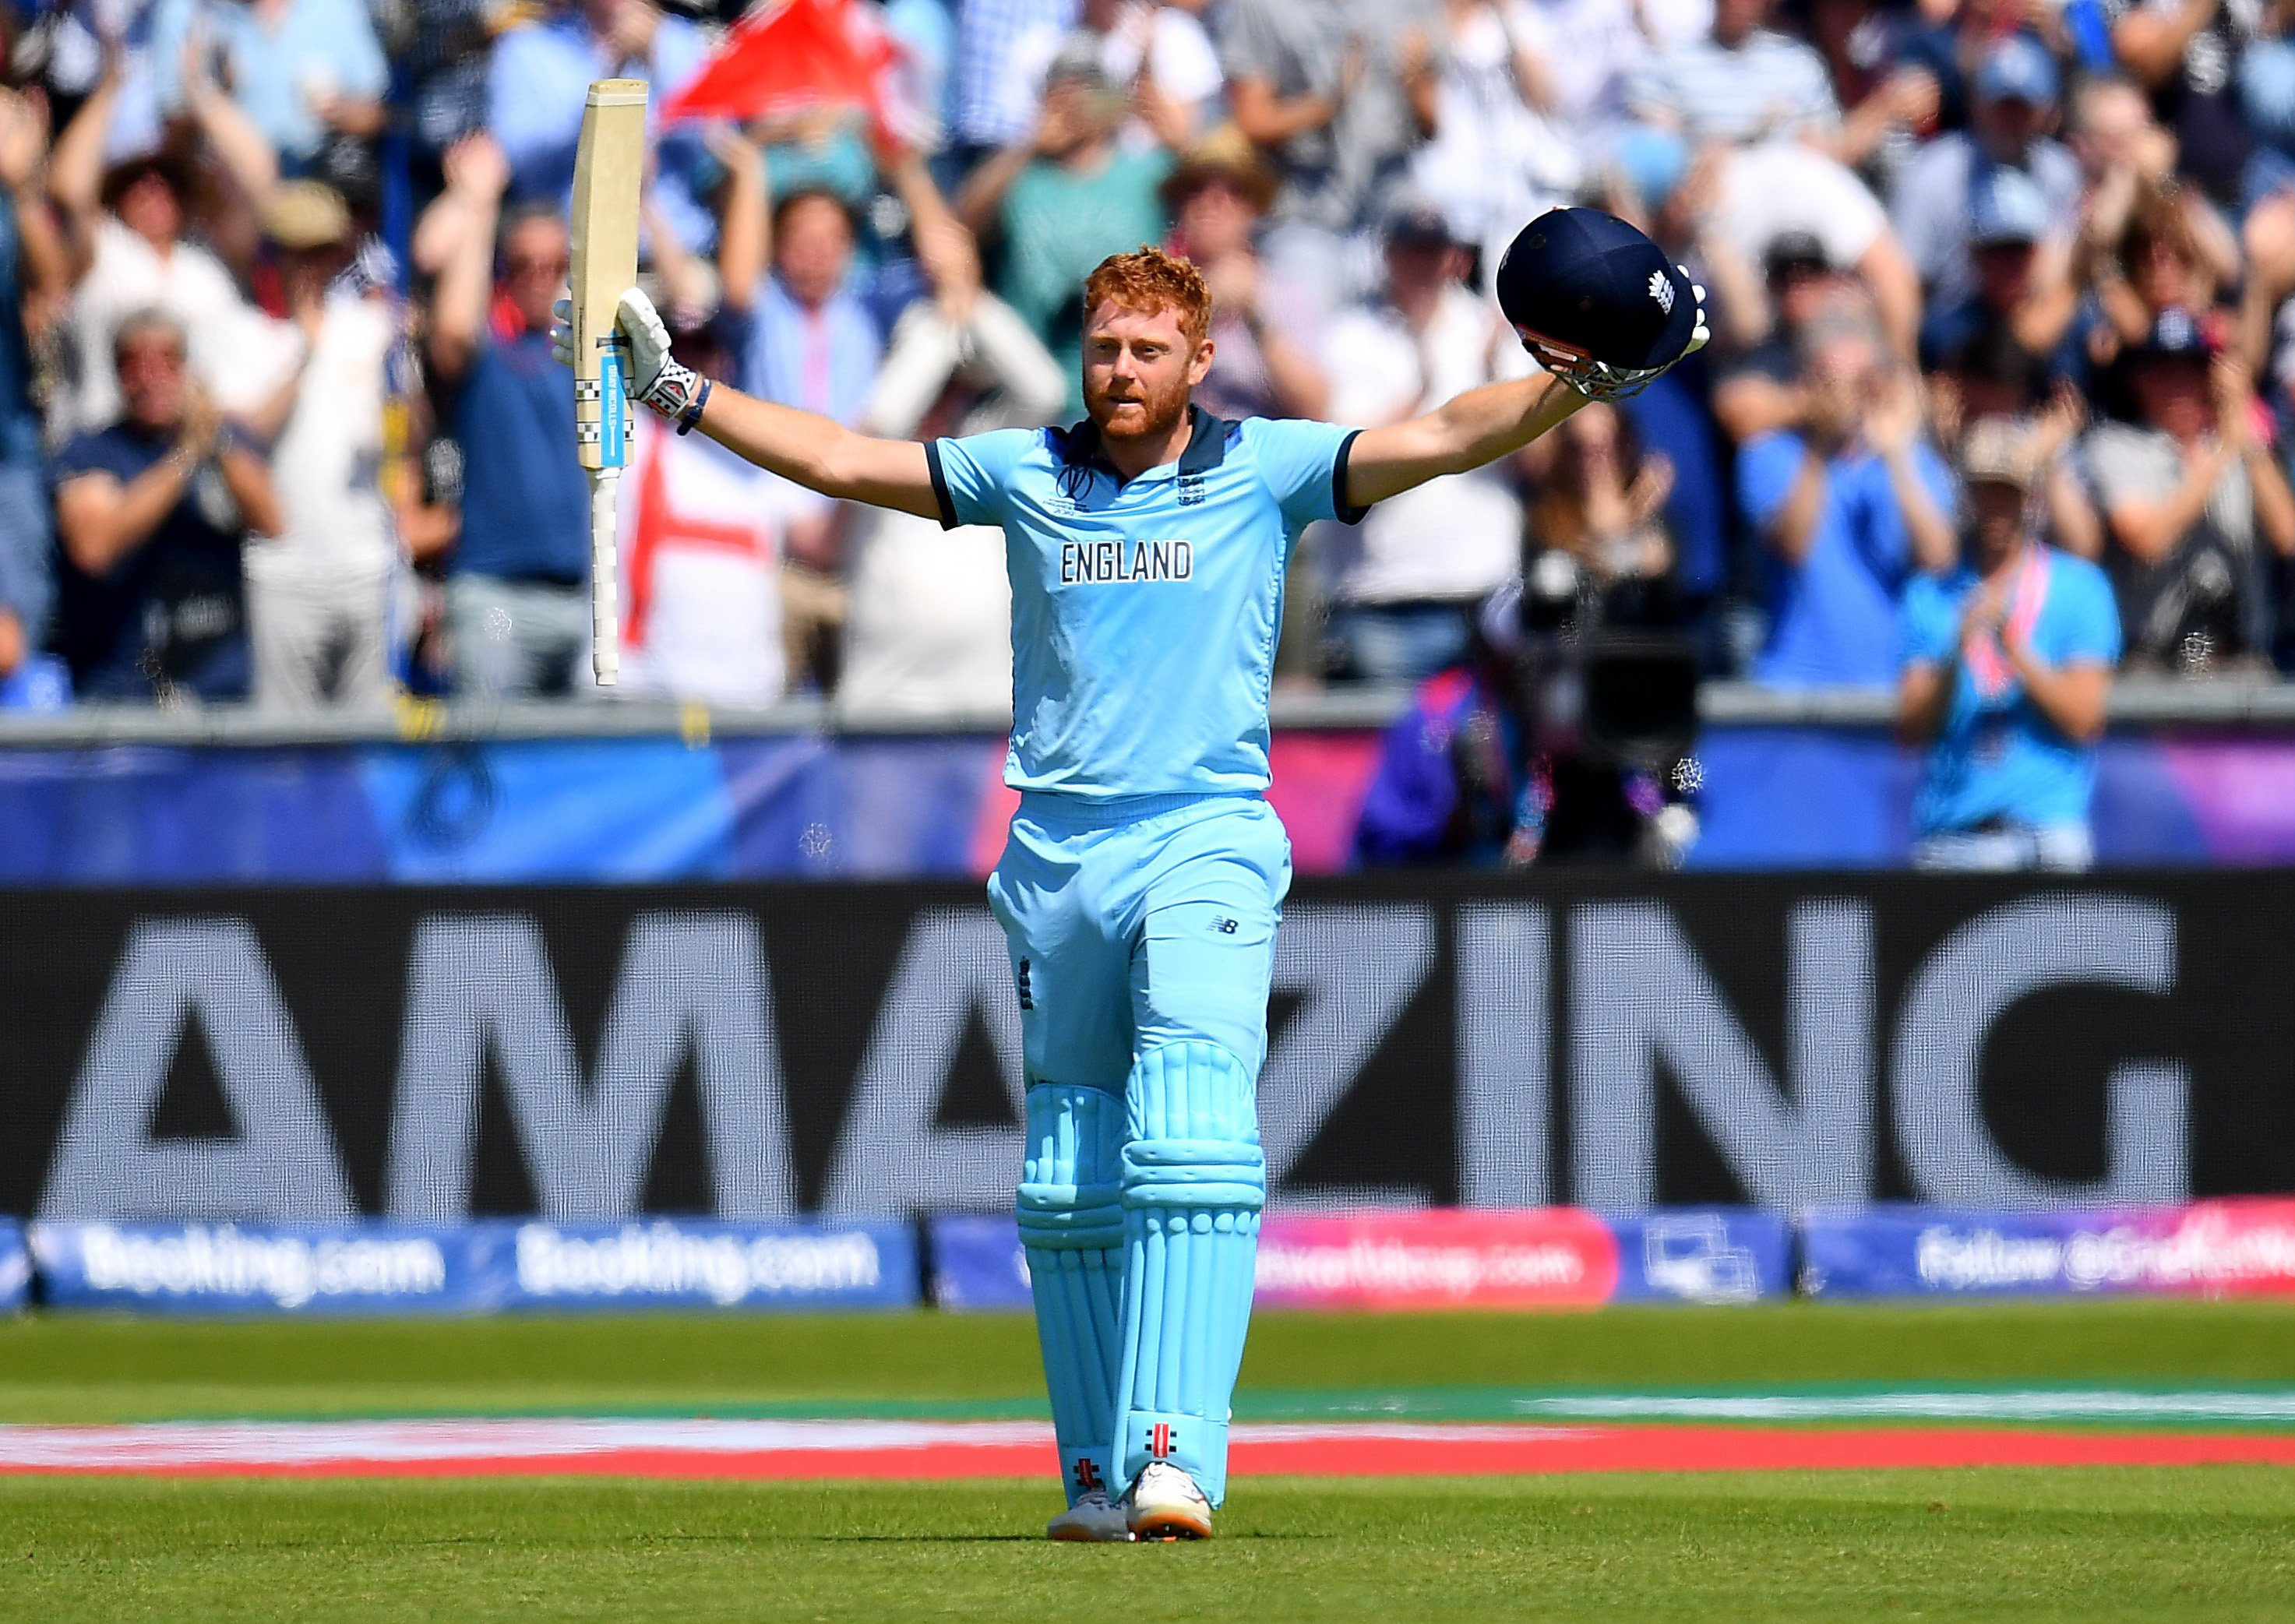 England vs. New Zealand: World Cup final on national TV offers chance to inspire a generation